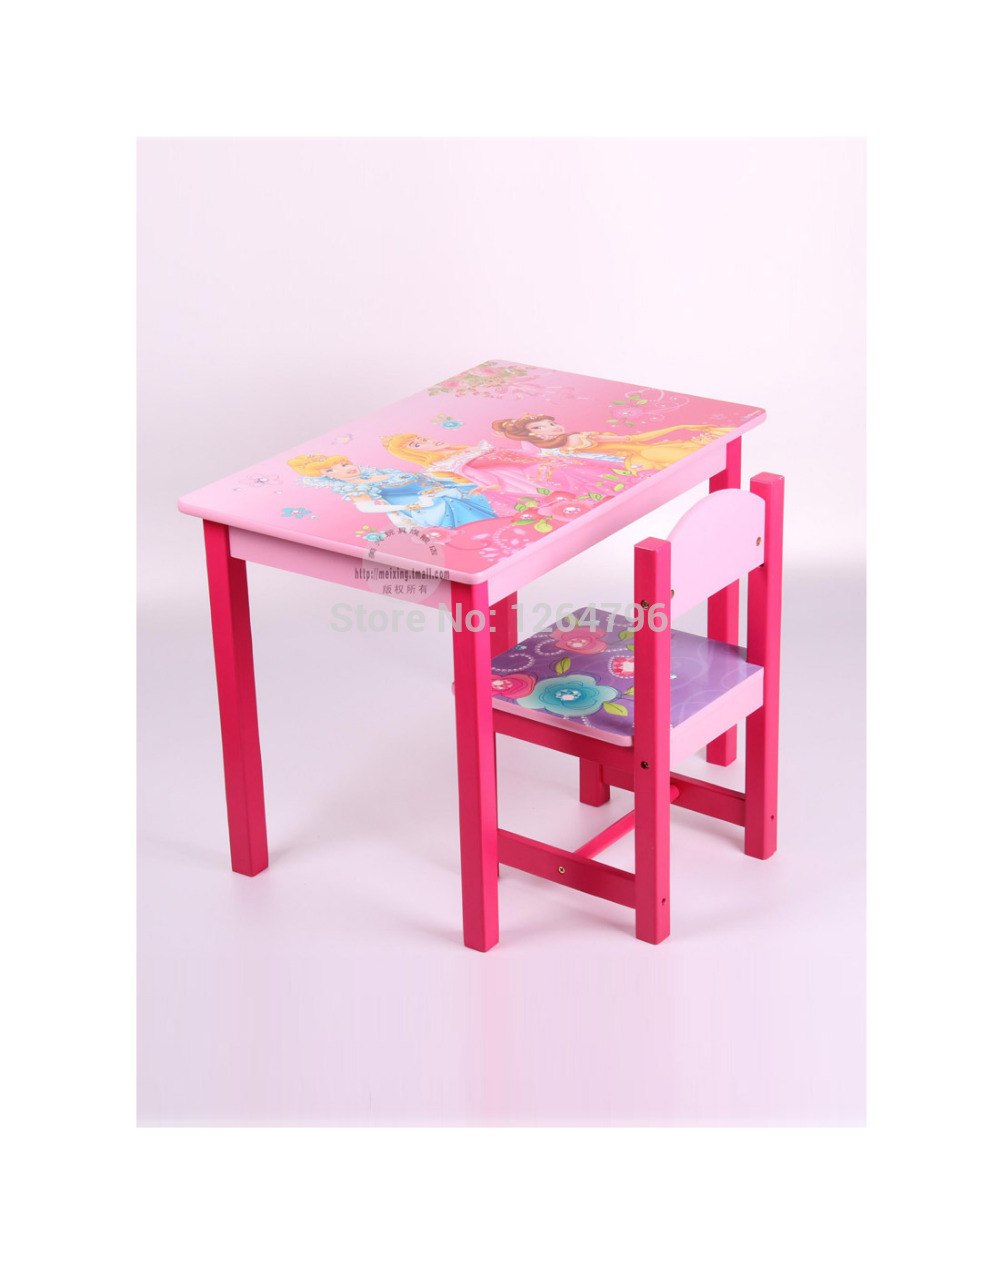 Shop Popular Kids Desk and Chair from China | Aliexpress